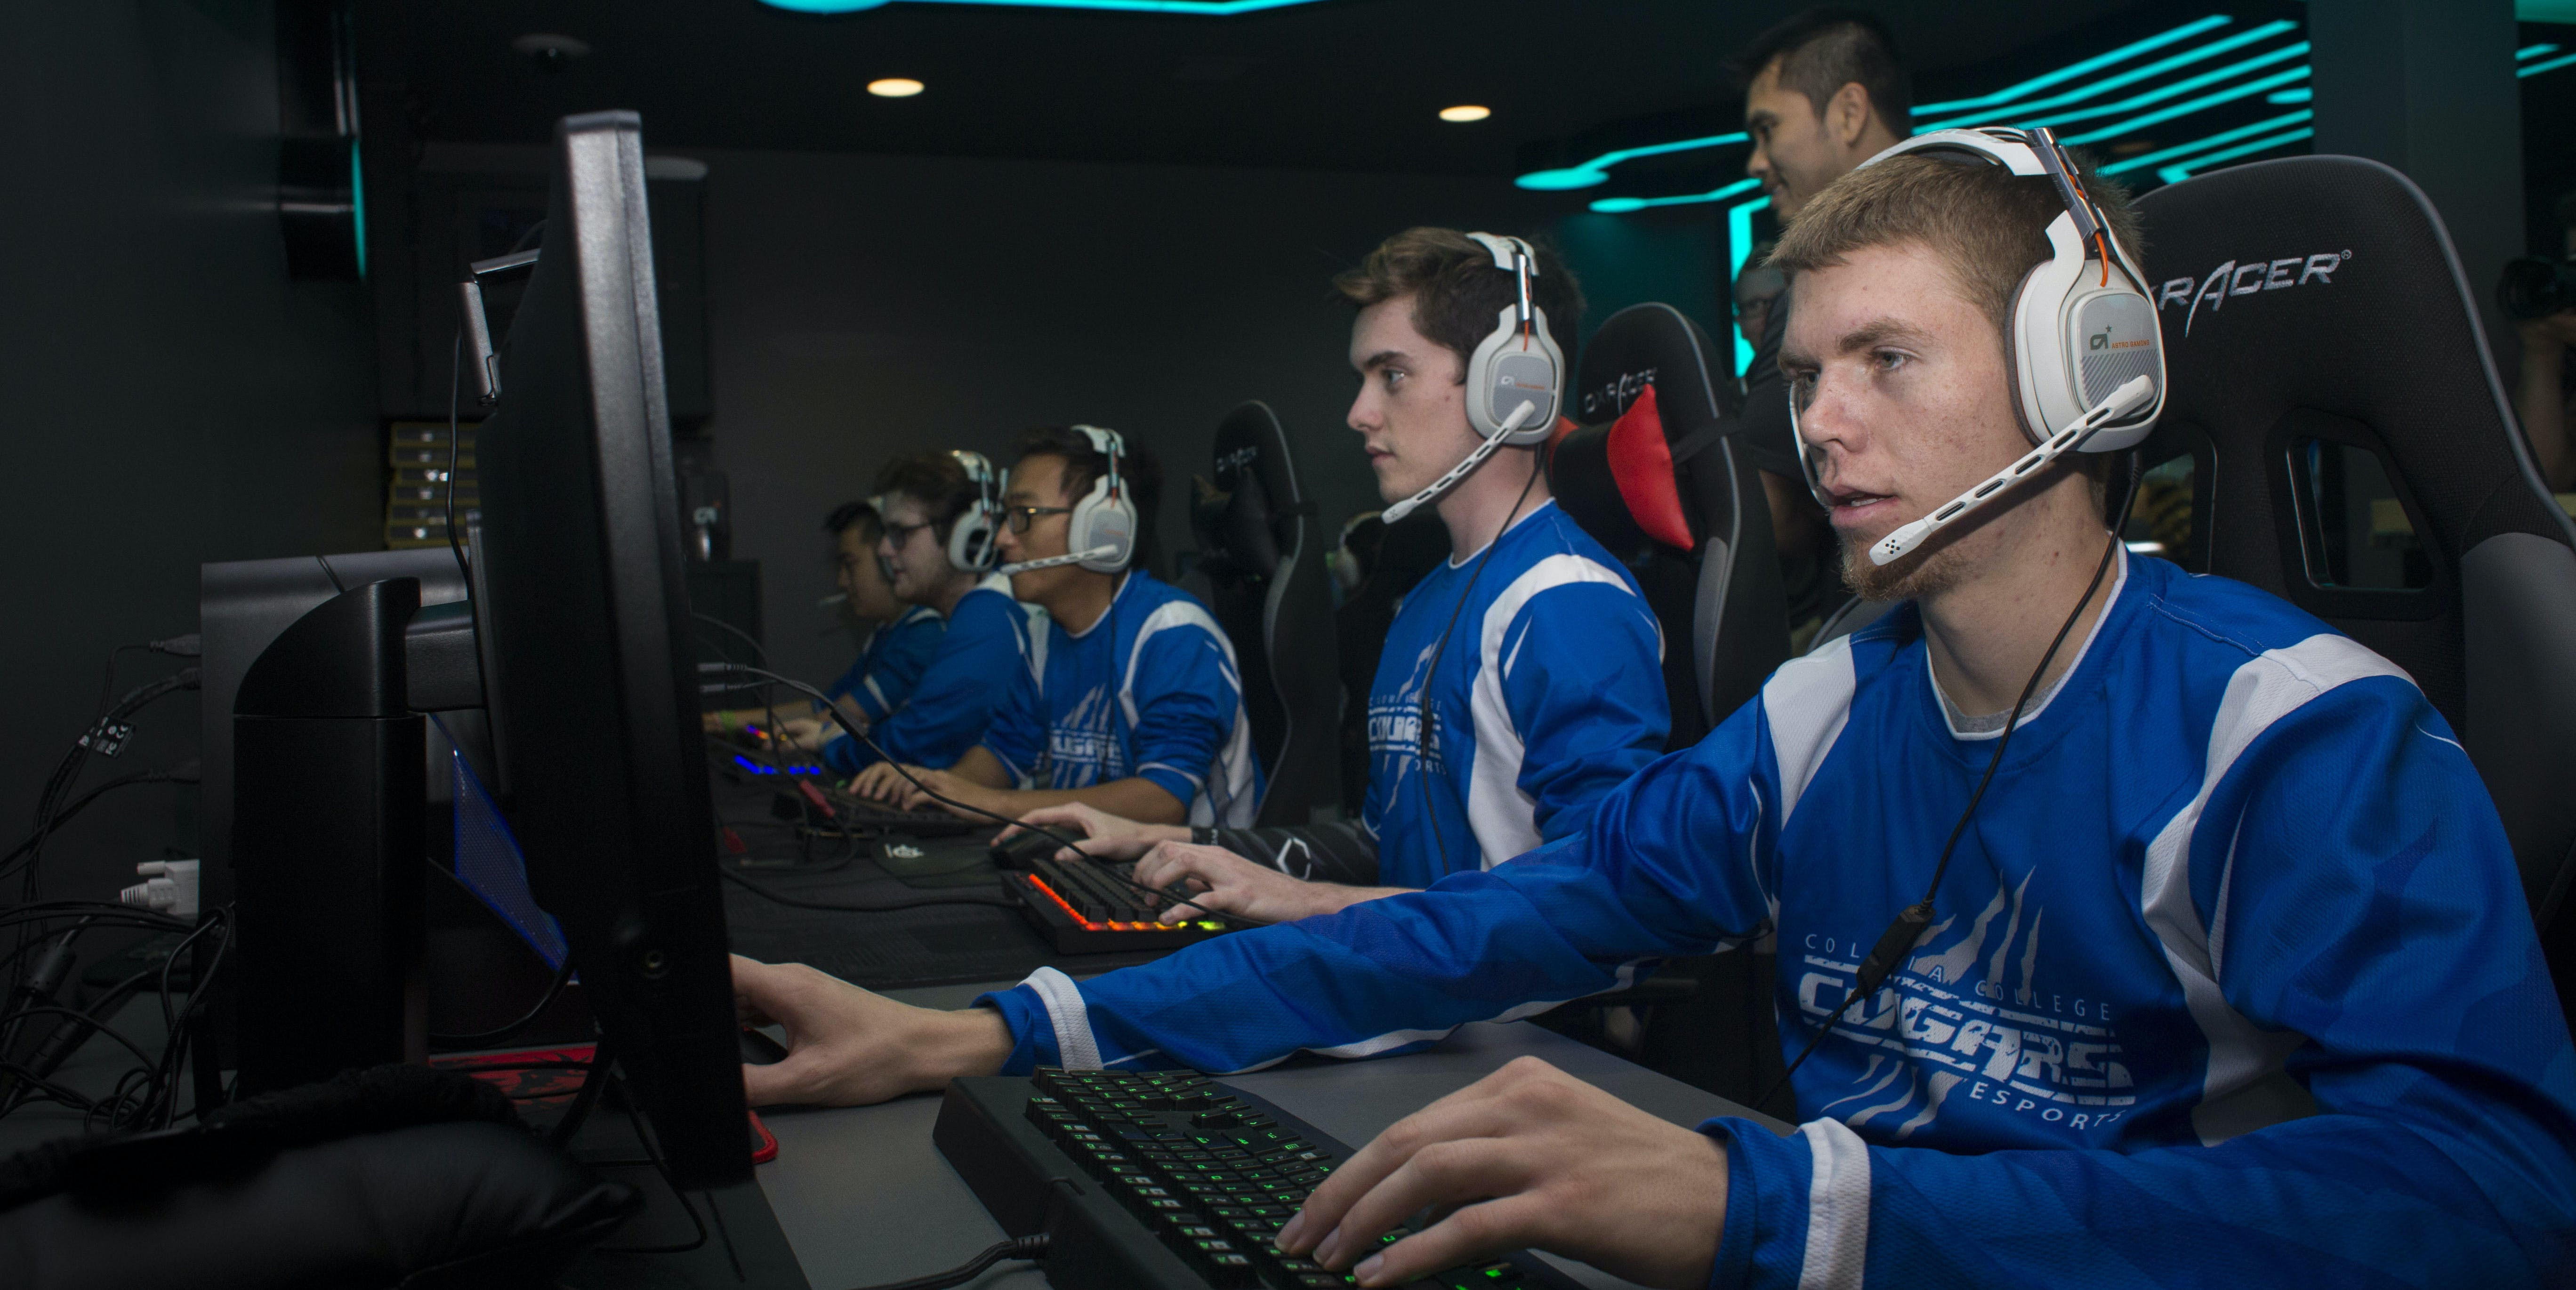 This is an example of a college sports team. An esports team, if you will.